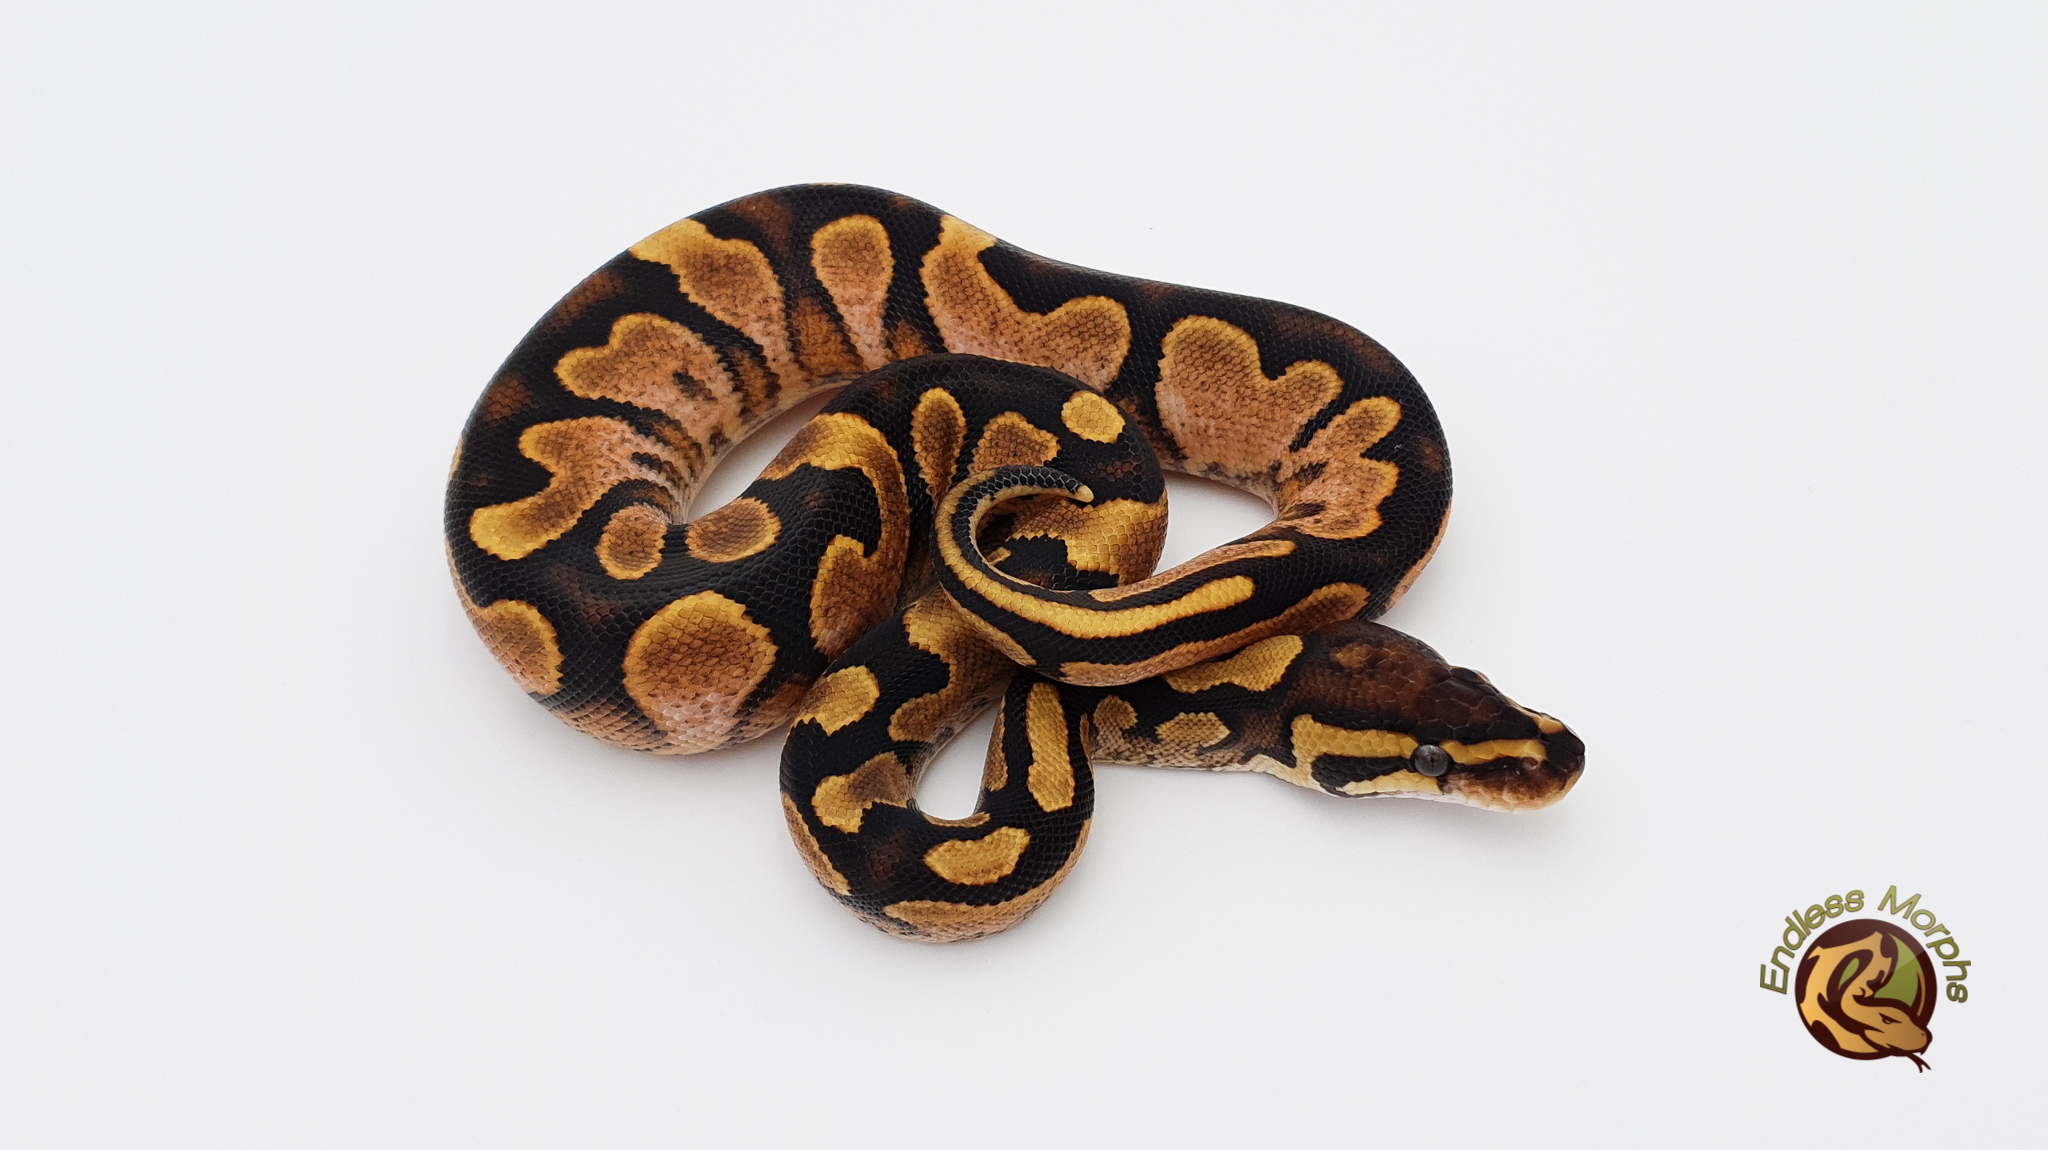 0.1 Calico Yellow Belly Königspython